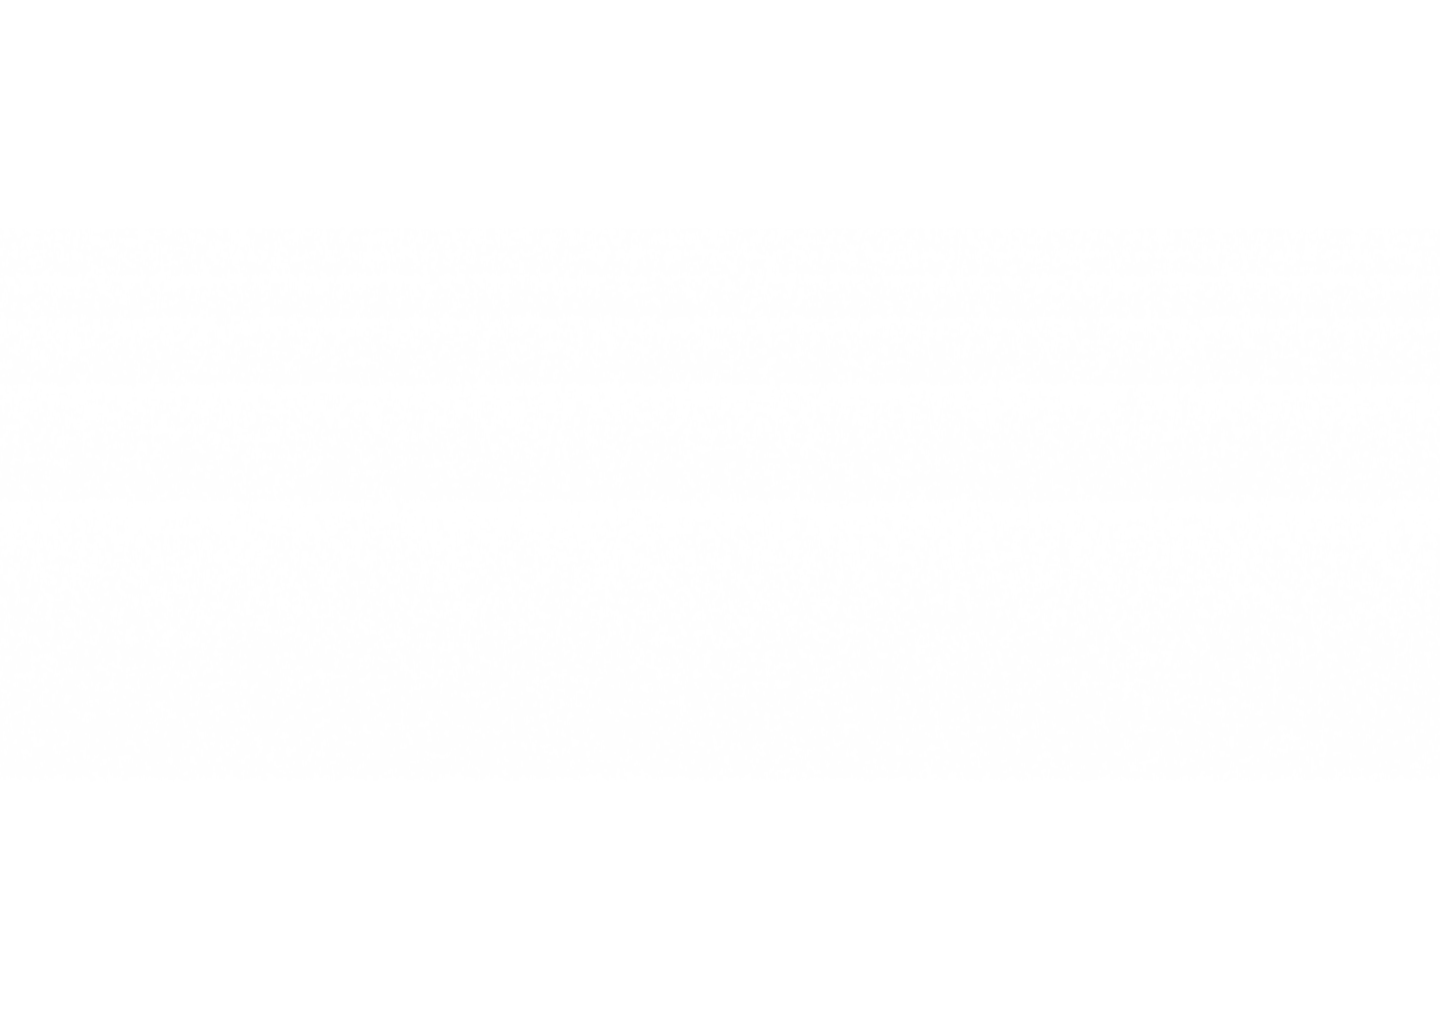 gradent white background copy (1).png